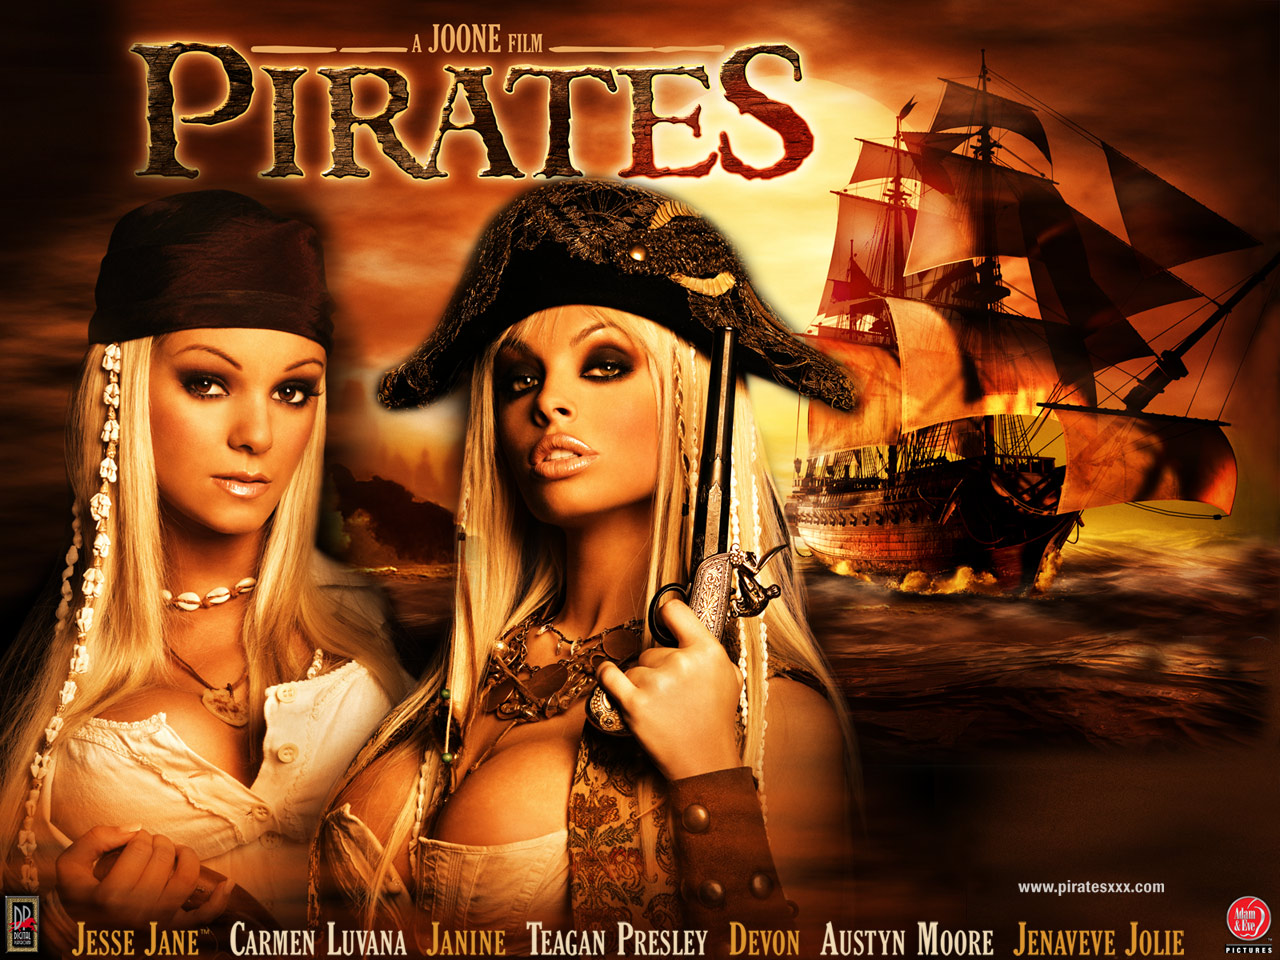 Previous Post: PIRATES – Ali Joone: www.throughtheblackhole.com/pirates-ali-joone/pirates